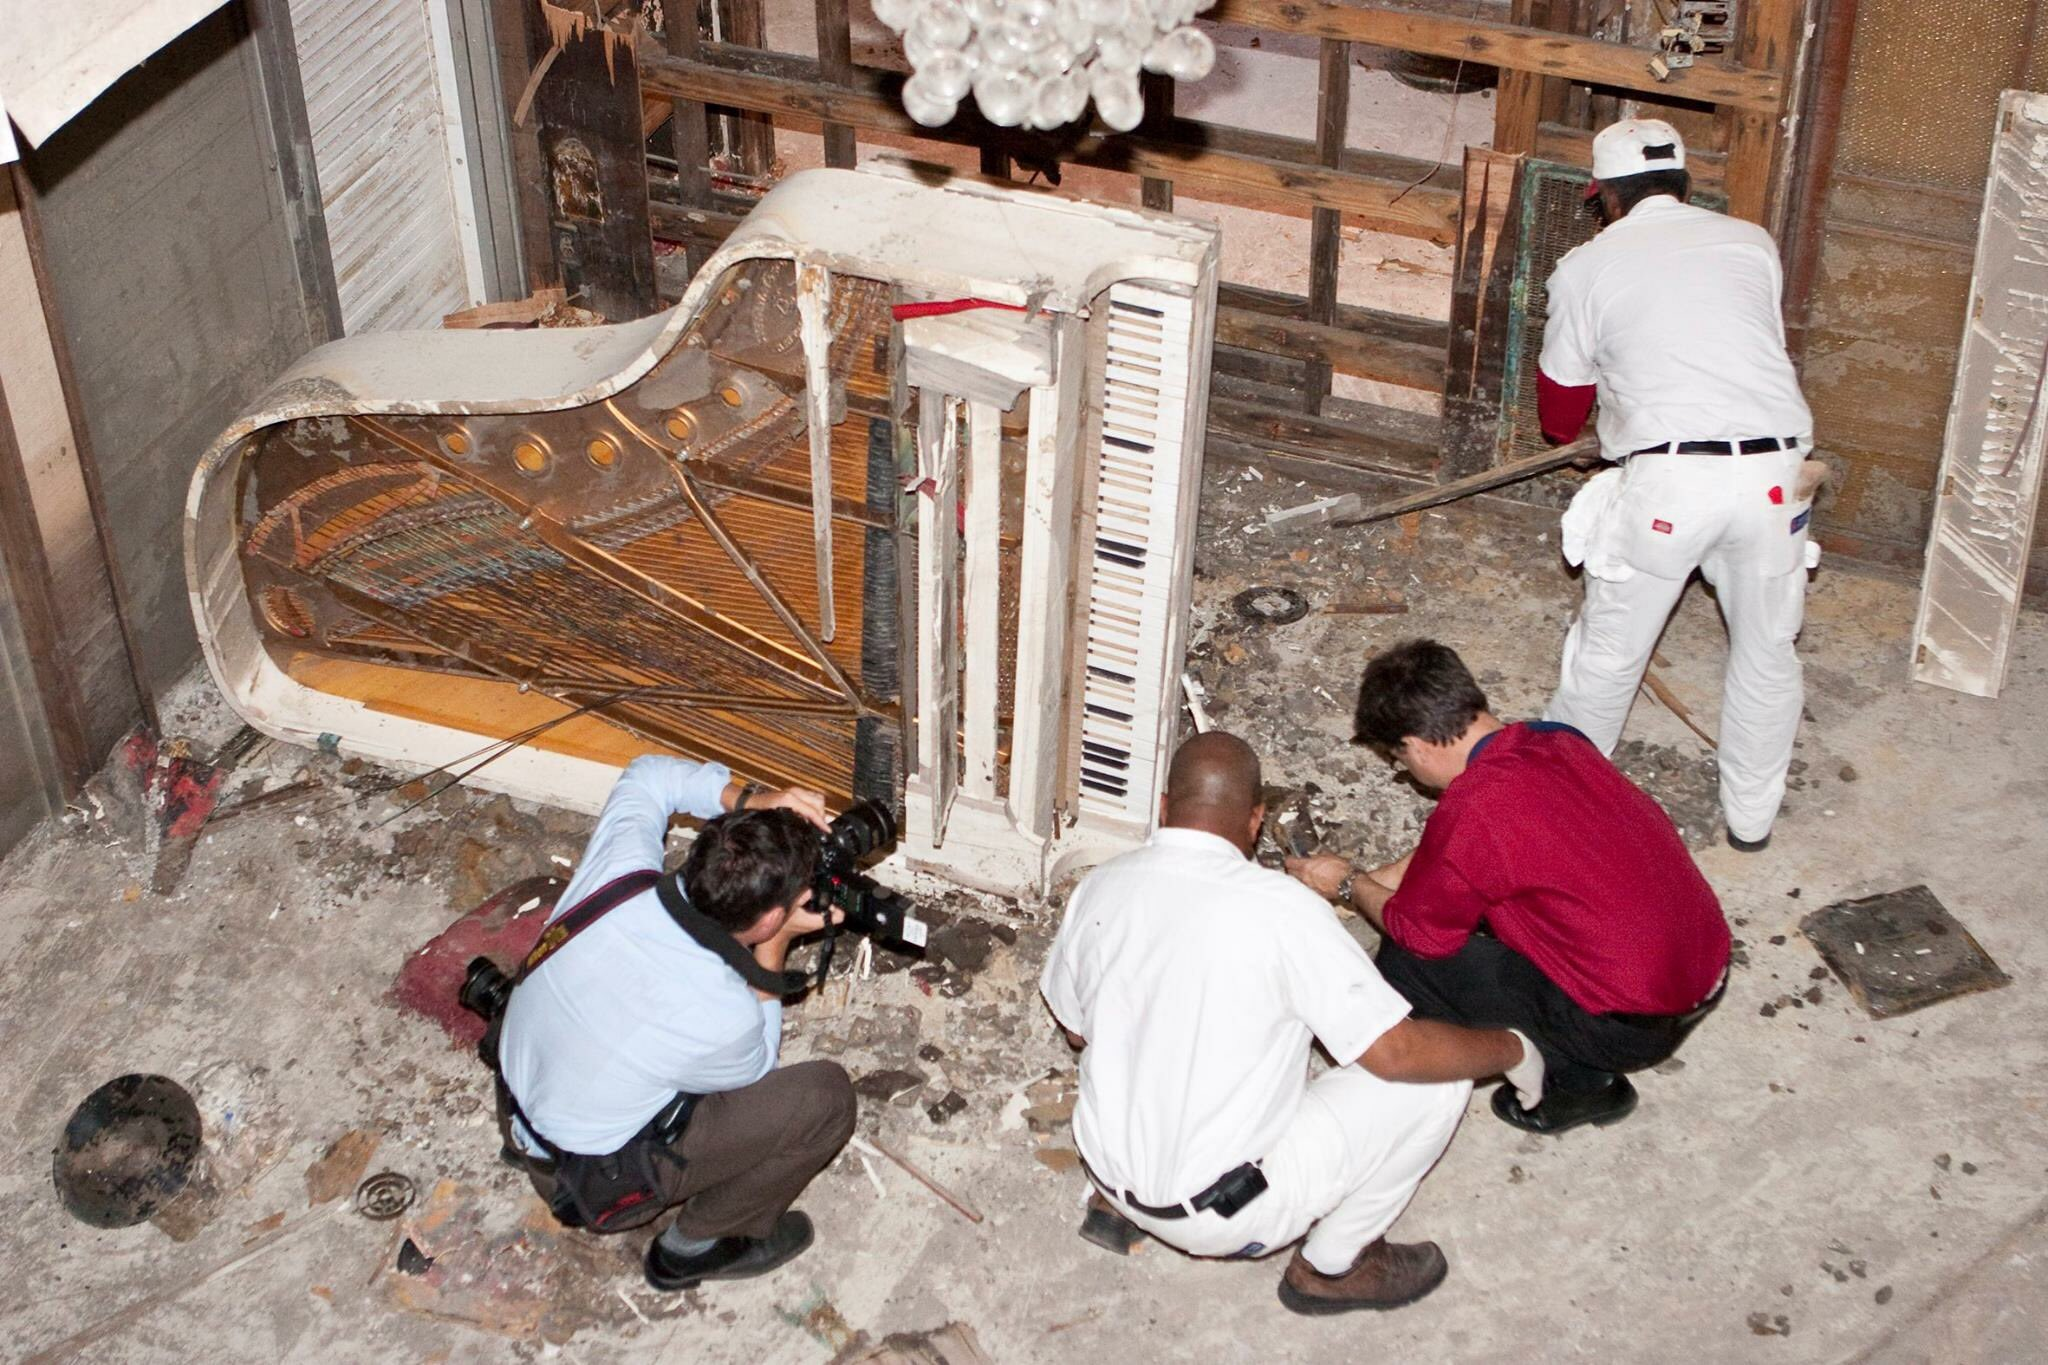 Reloaded twaddle – RT @nolajazzmuseum: After #HurricaneKatrina, museum staff rescued Fats Domino's ...